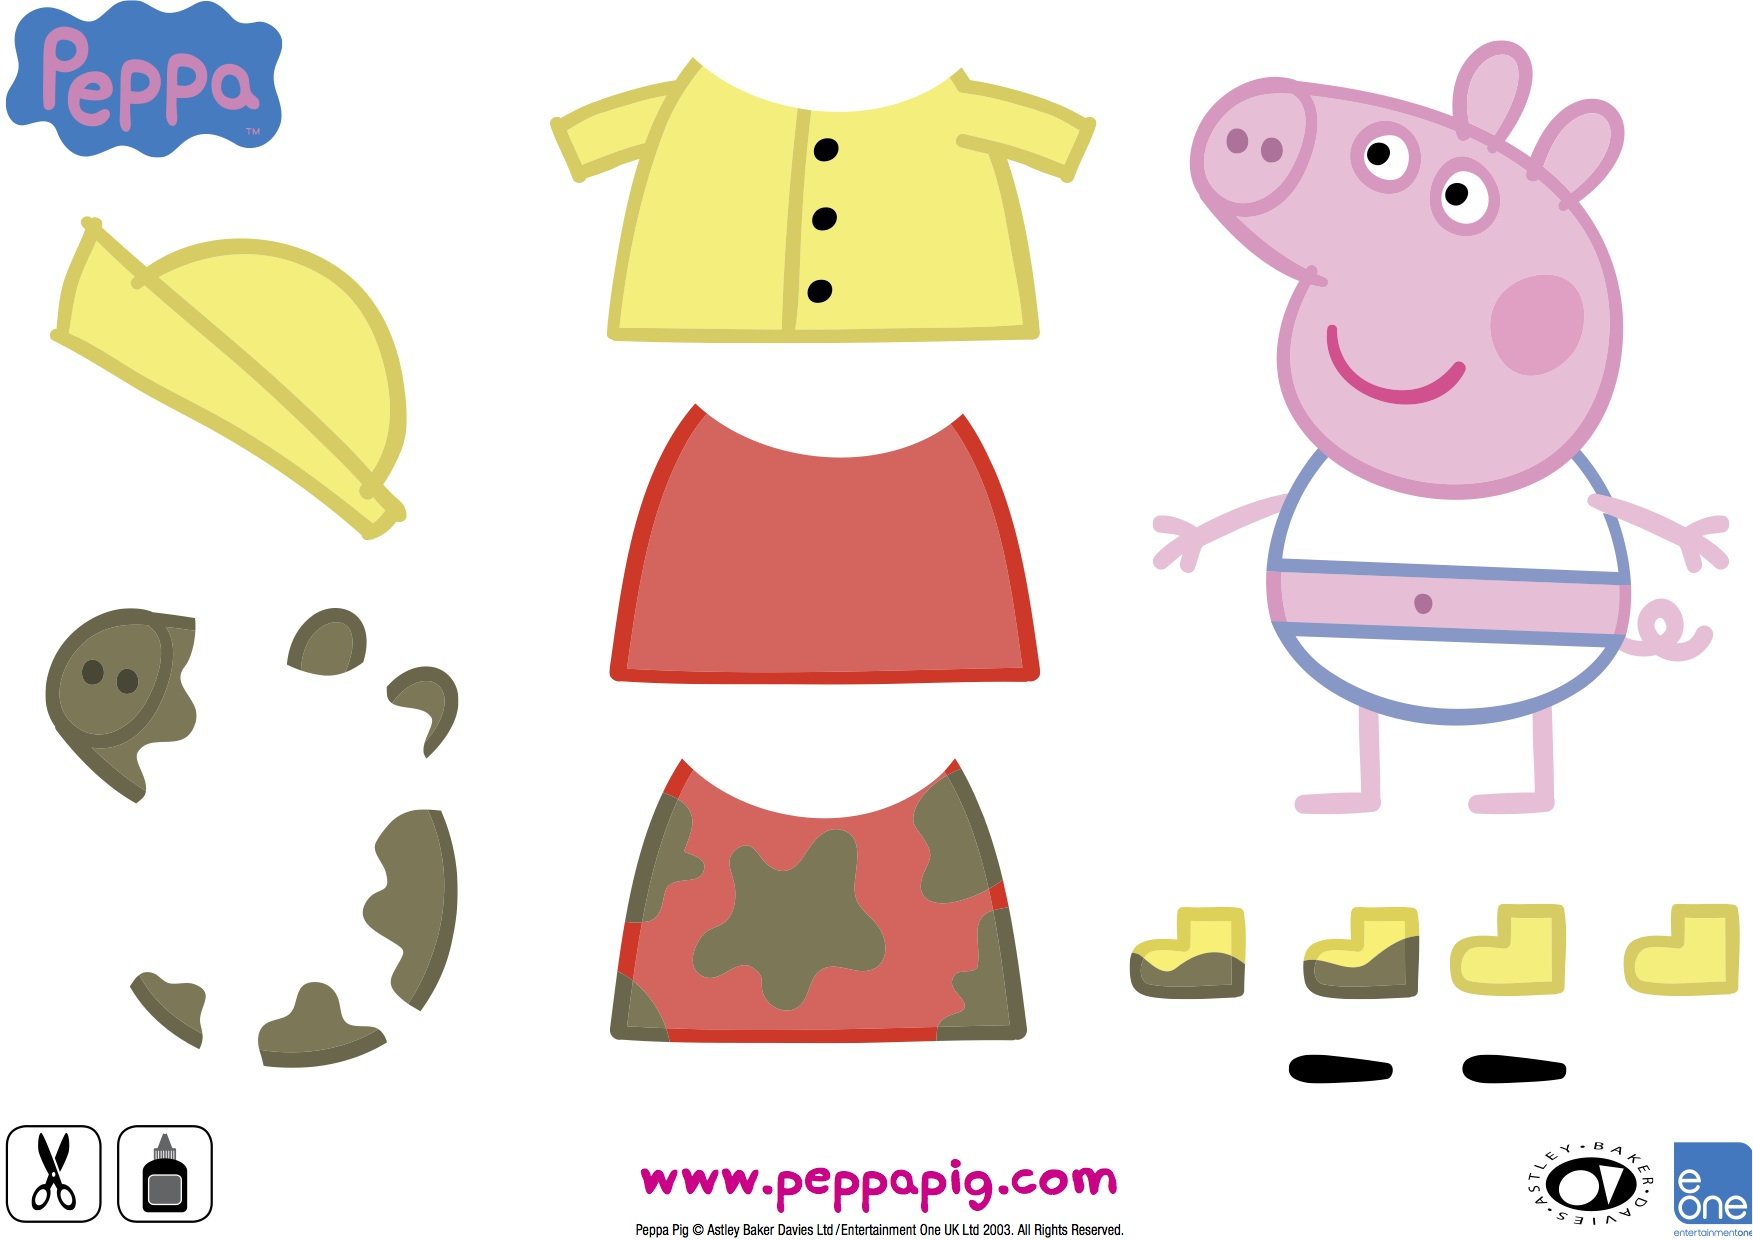 Rainy Day Activities Download These FREE Peppa Pig Activity Sheets Mums Lounge